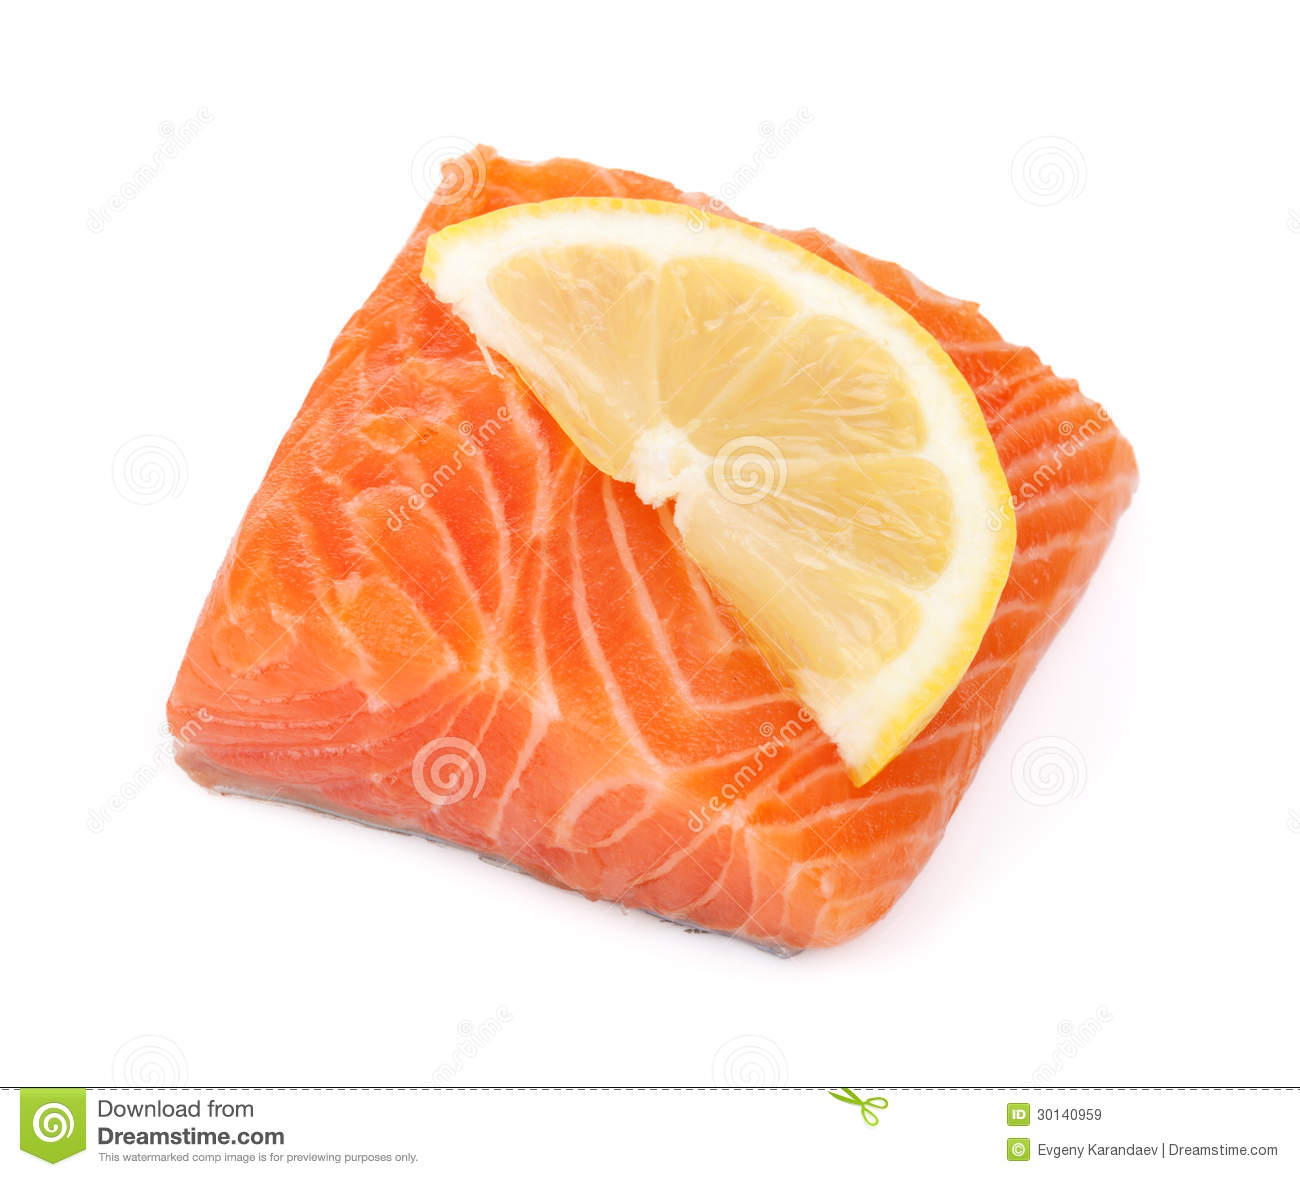 how to cook a piece of salmon